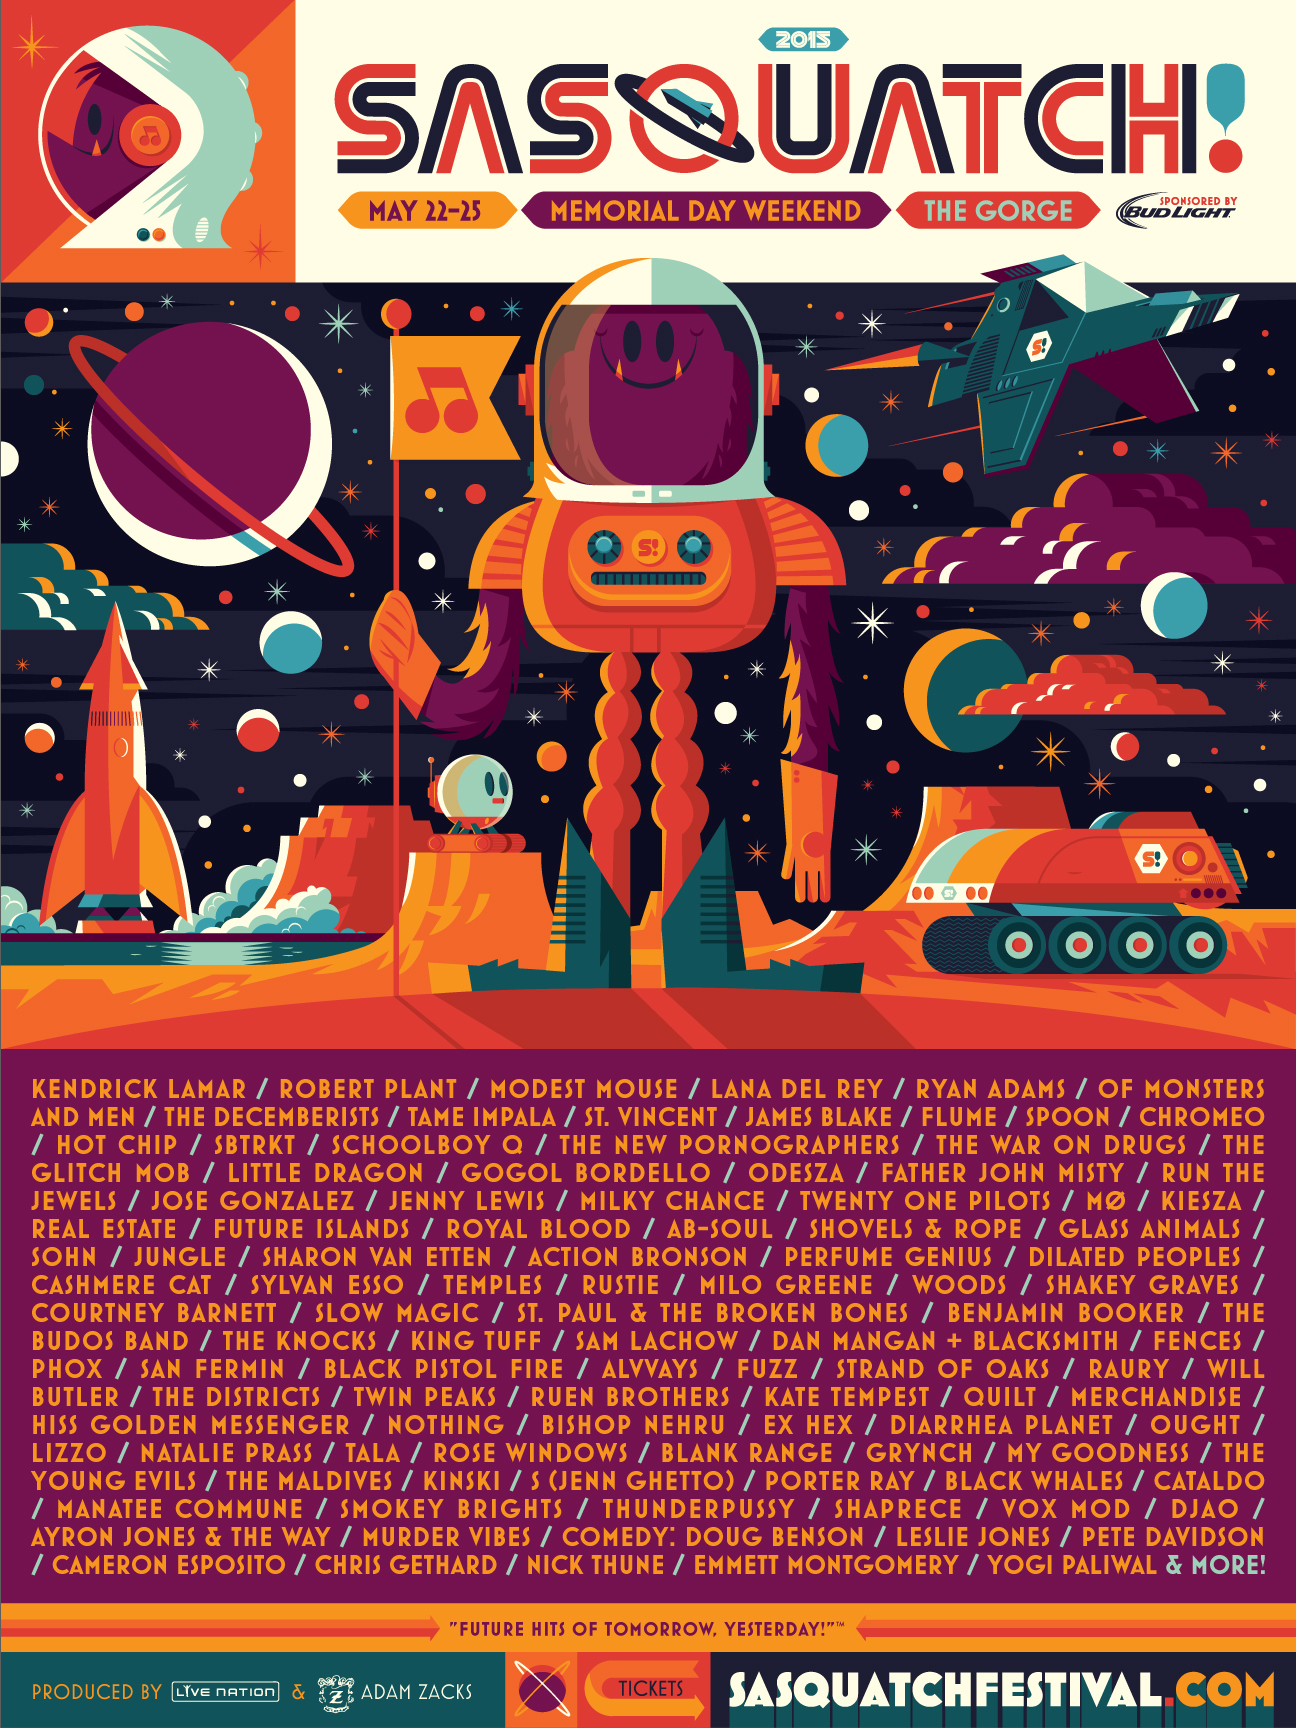 sasquatch2015 The Best of the Tiny Fonts in Sasquatch!s 2015 Lineup